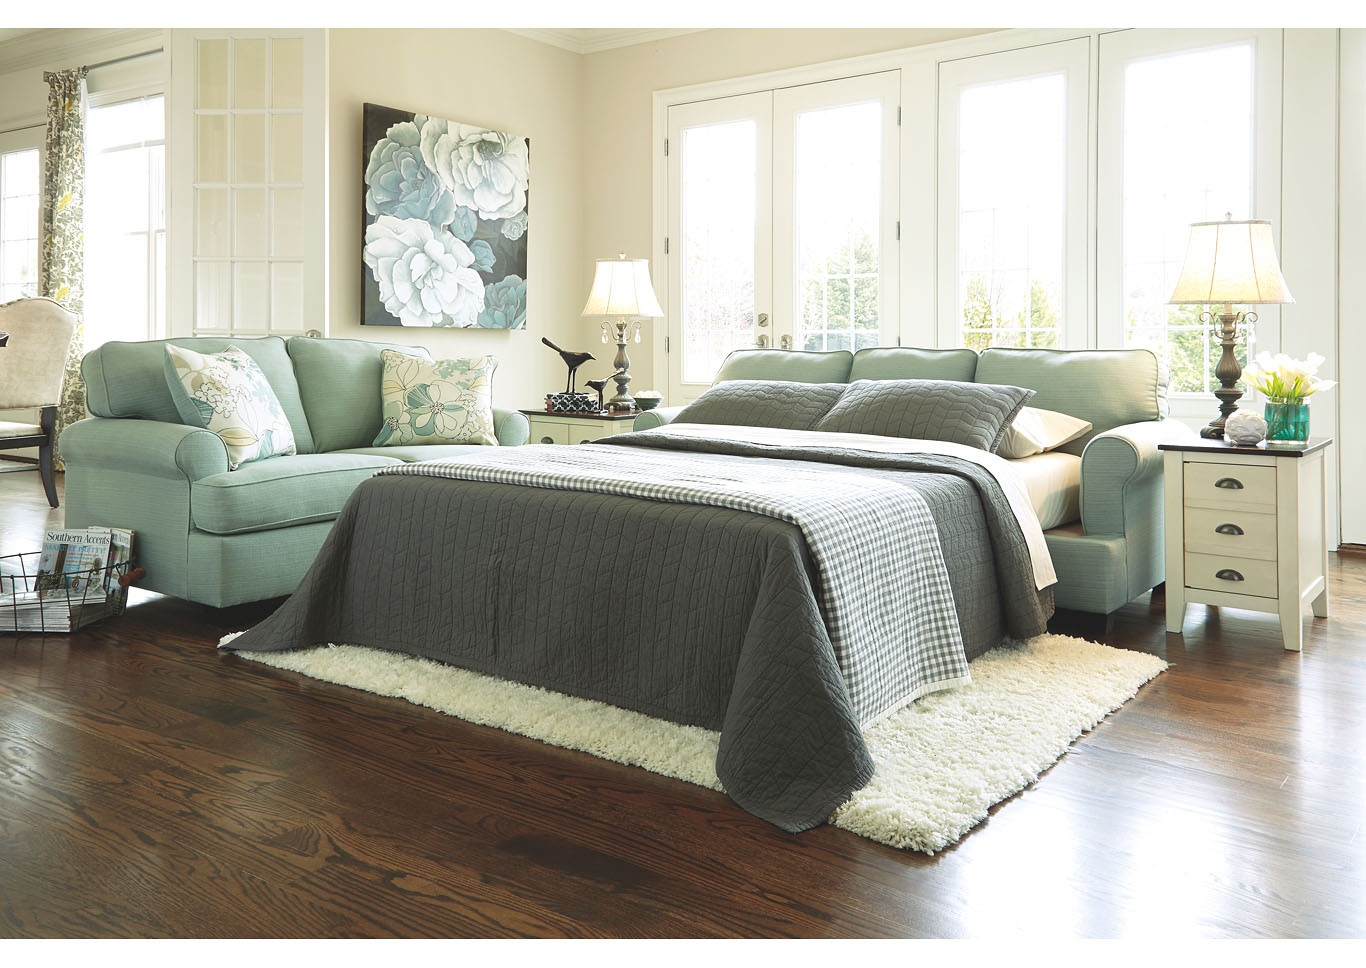 Daystar Seafoam Queen Sofa Sleeper,Signature Design By Ashley